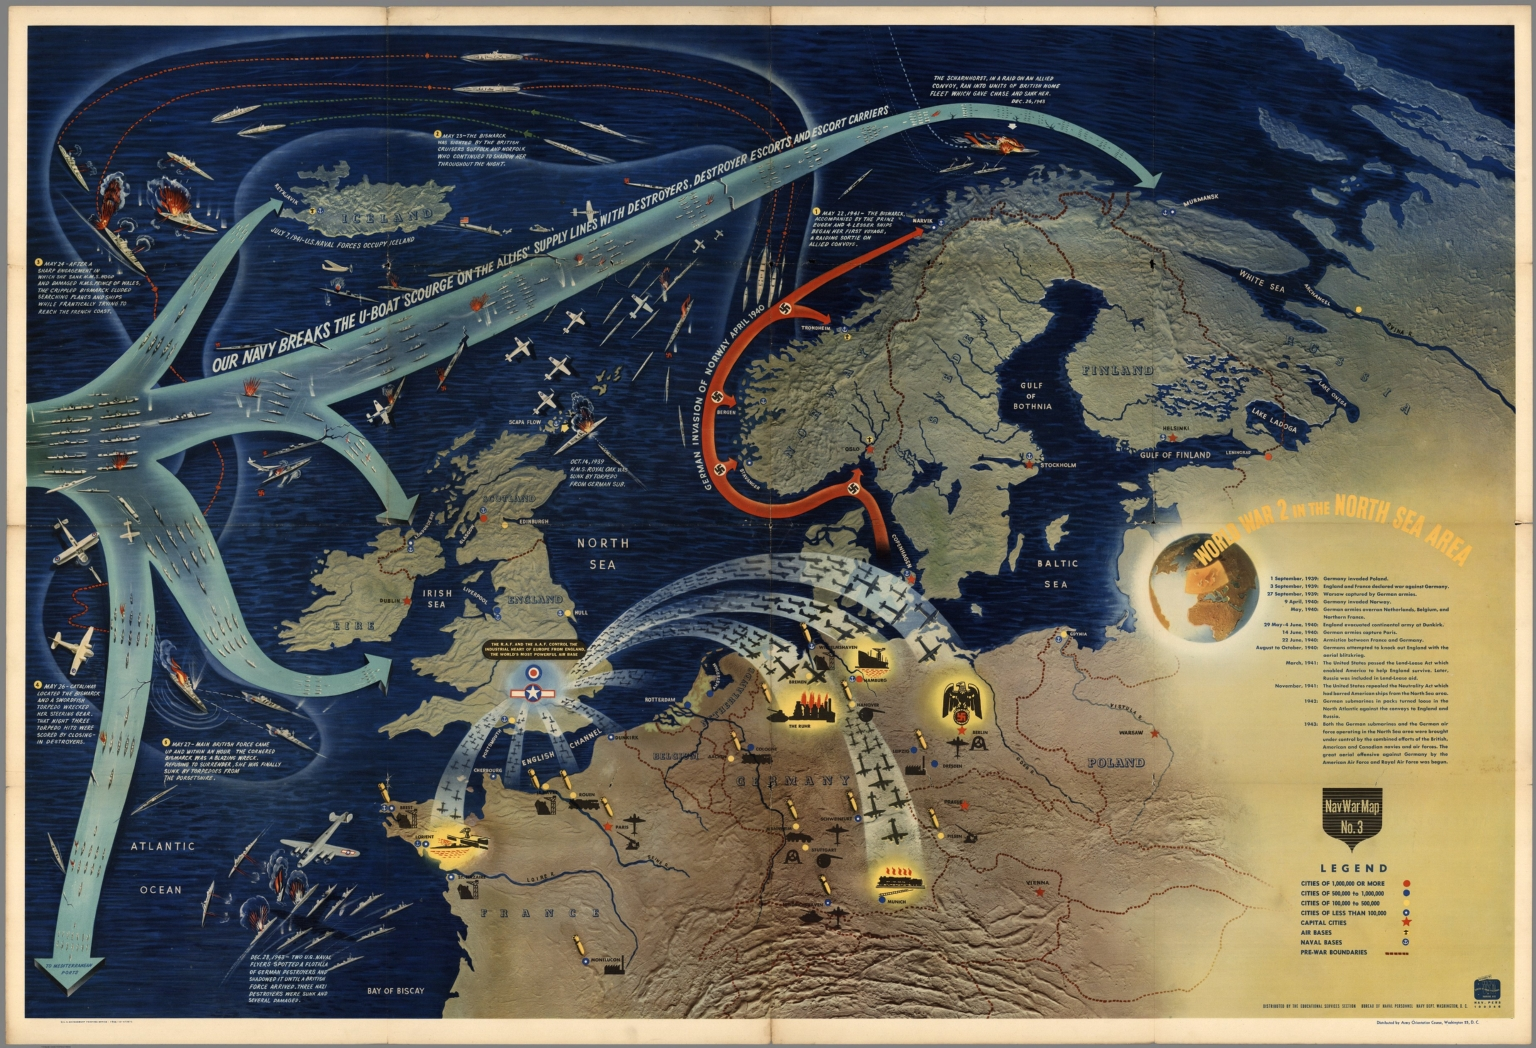 Navwarmap no3 world war 2 in the north sea area david rumsey world war 2 in the north sea area gumiabroncs Image collections